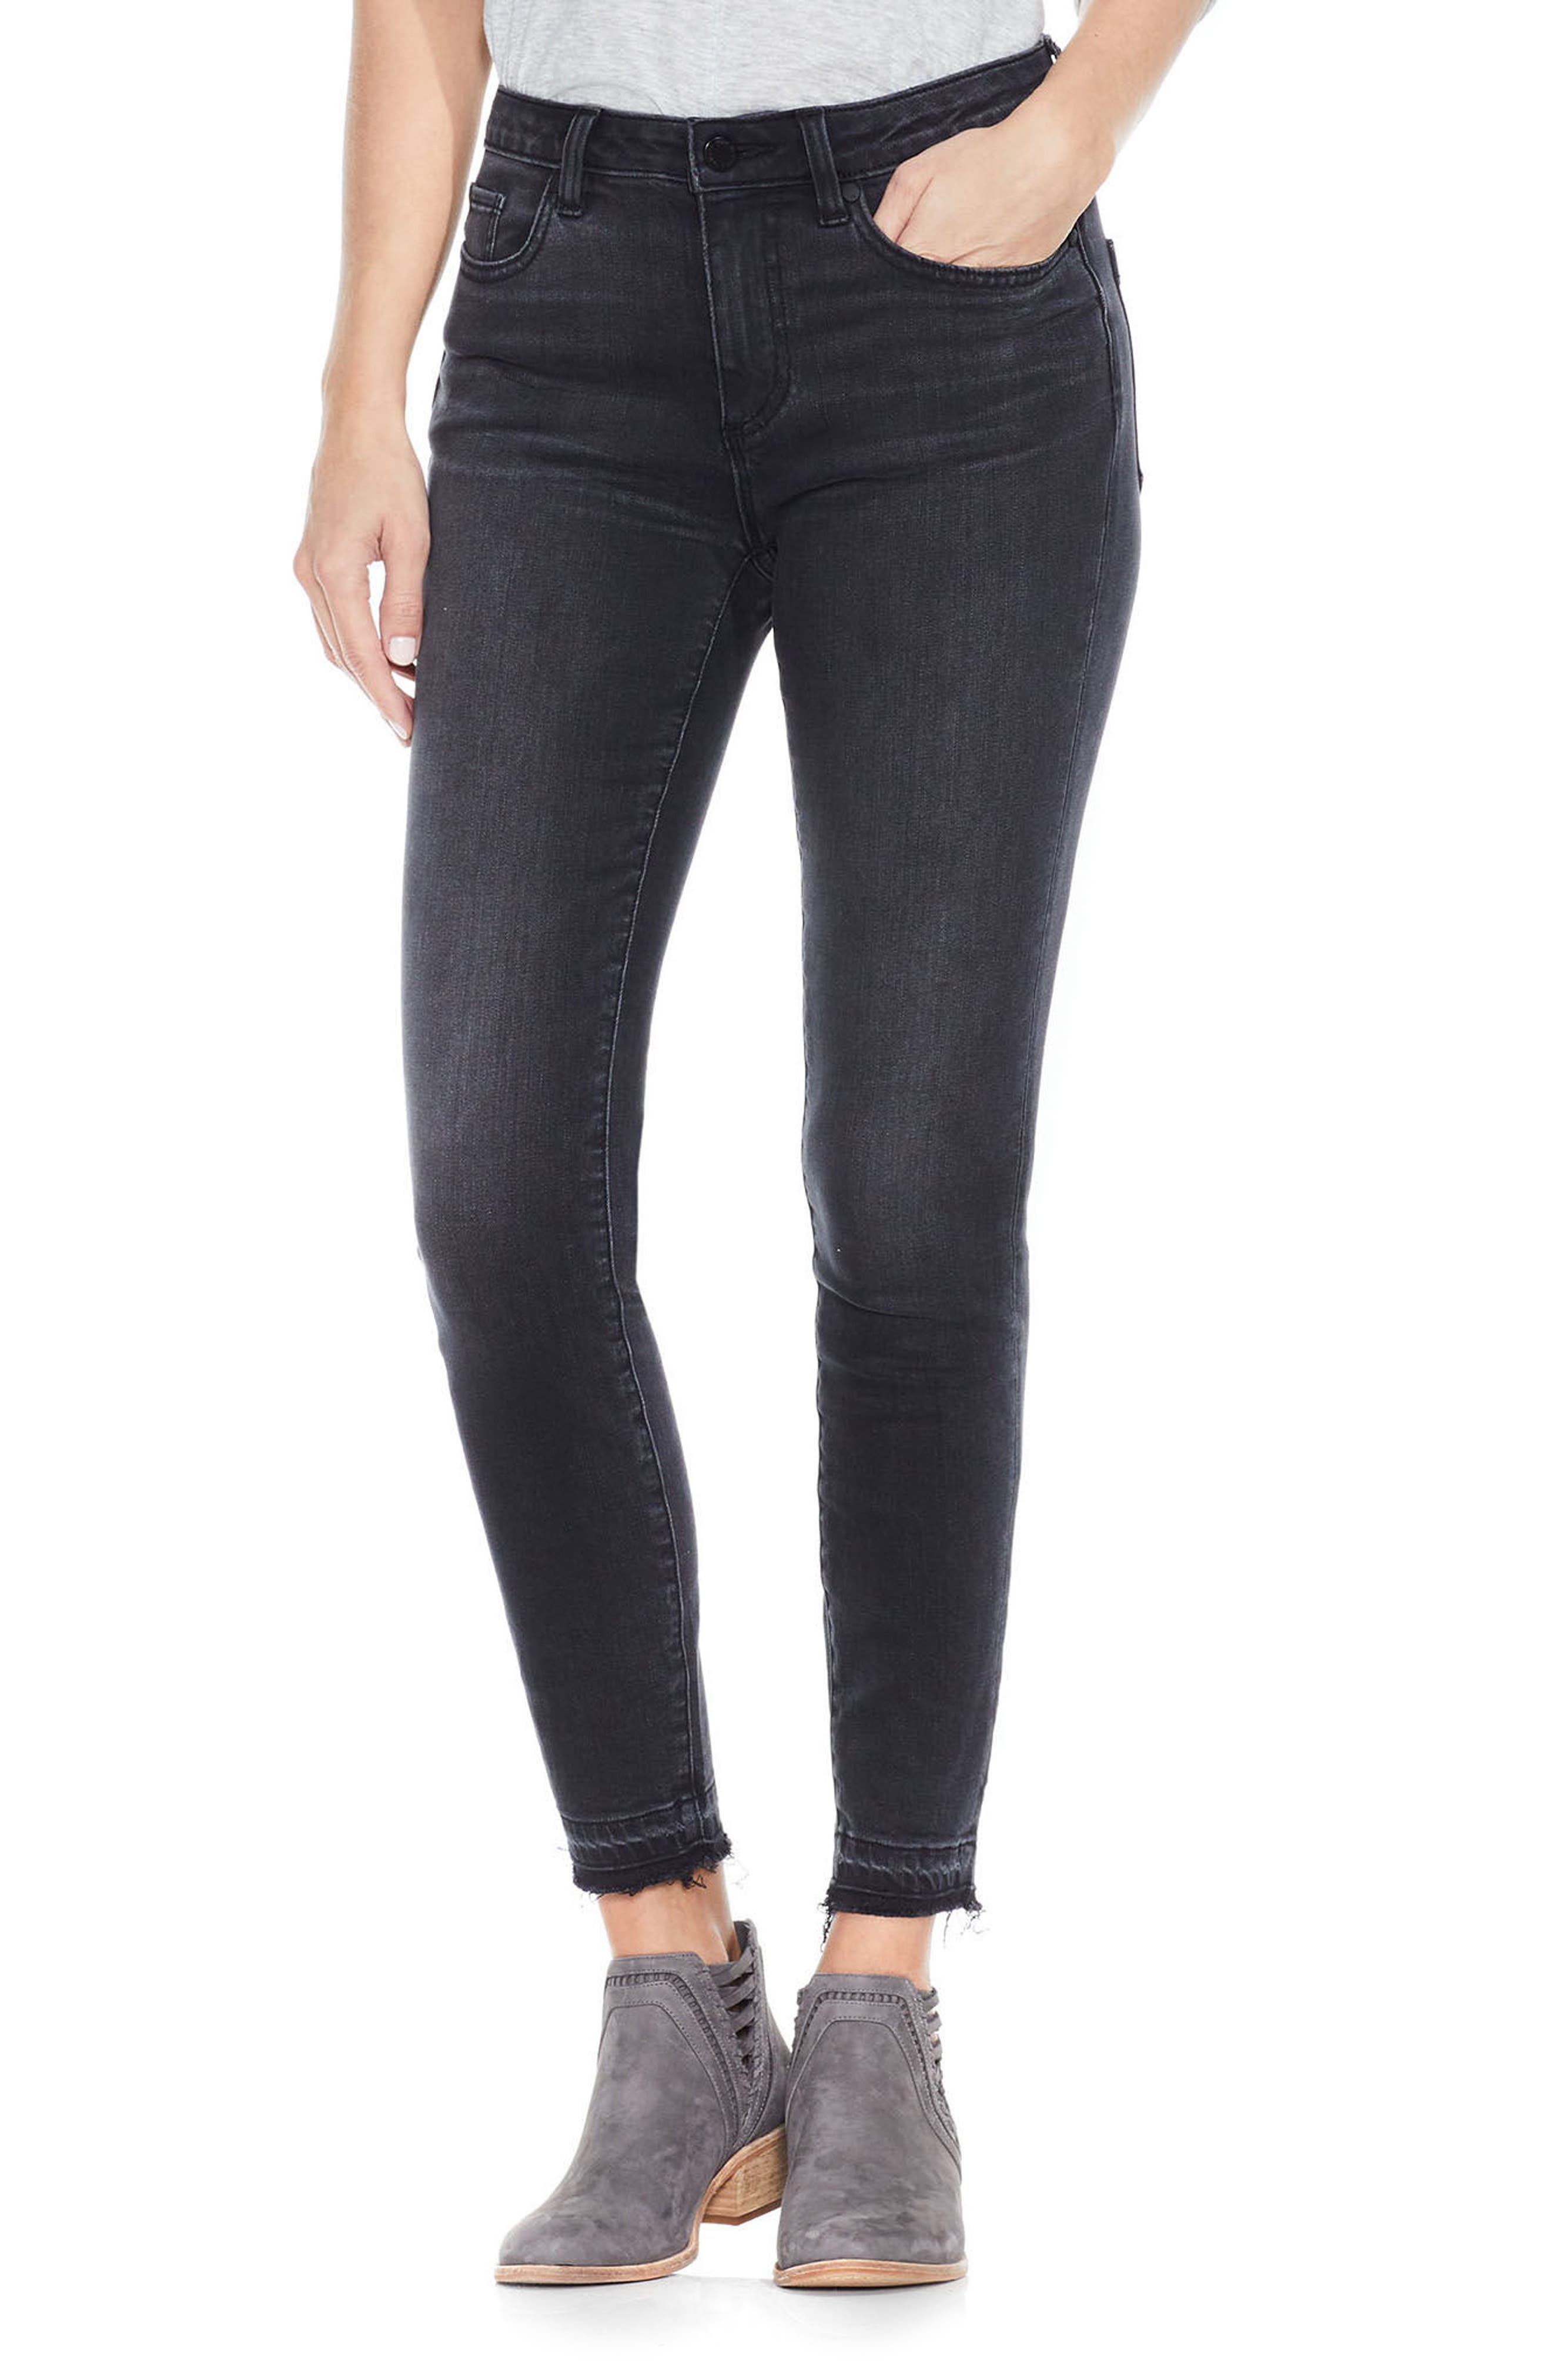 Main Image - Two by Vince Camuto Release Hem Ankle Jeans (Coal)